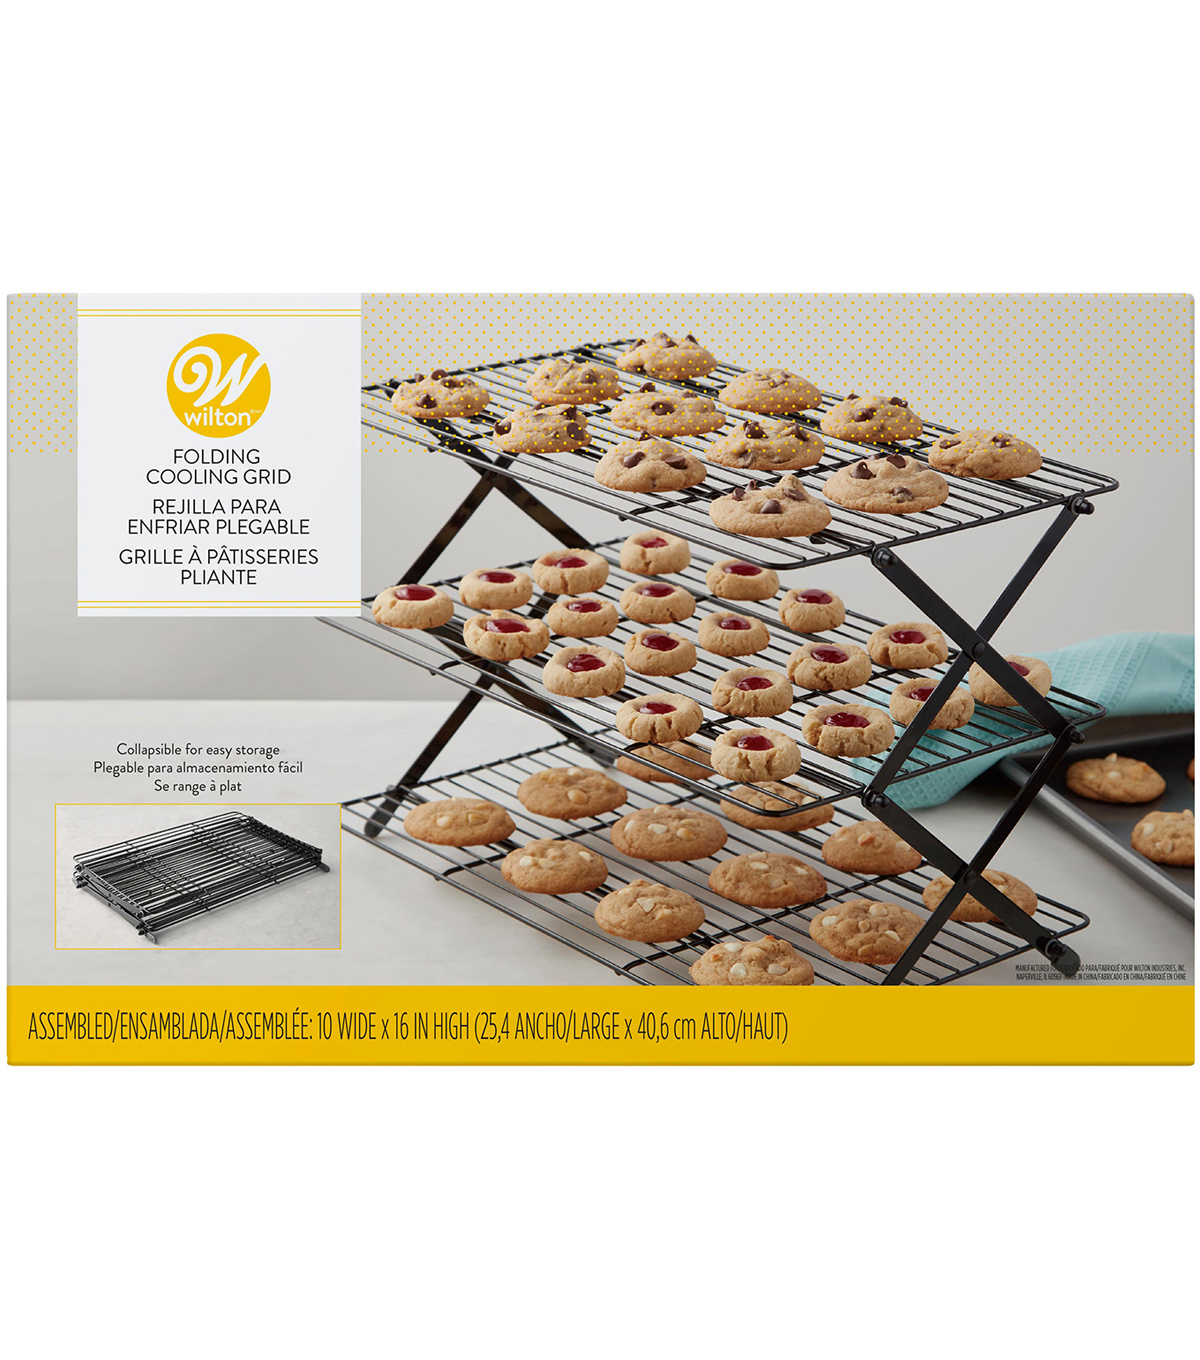 Wilton 10''x16'' 3 Tier Folding Cooling Grid                      Wilton 10''x16'' 3 Tier Folding Cooling Grid by Wilton